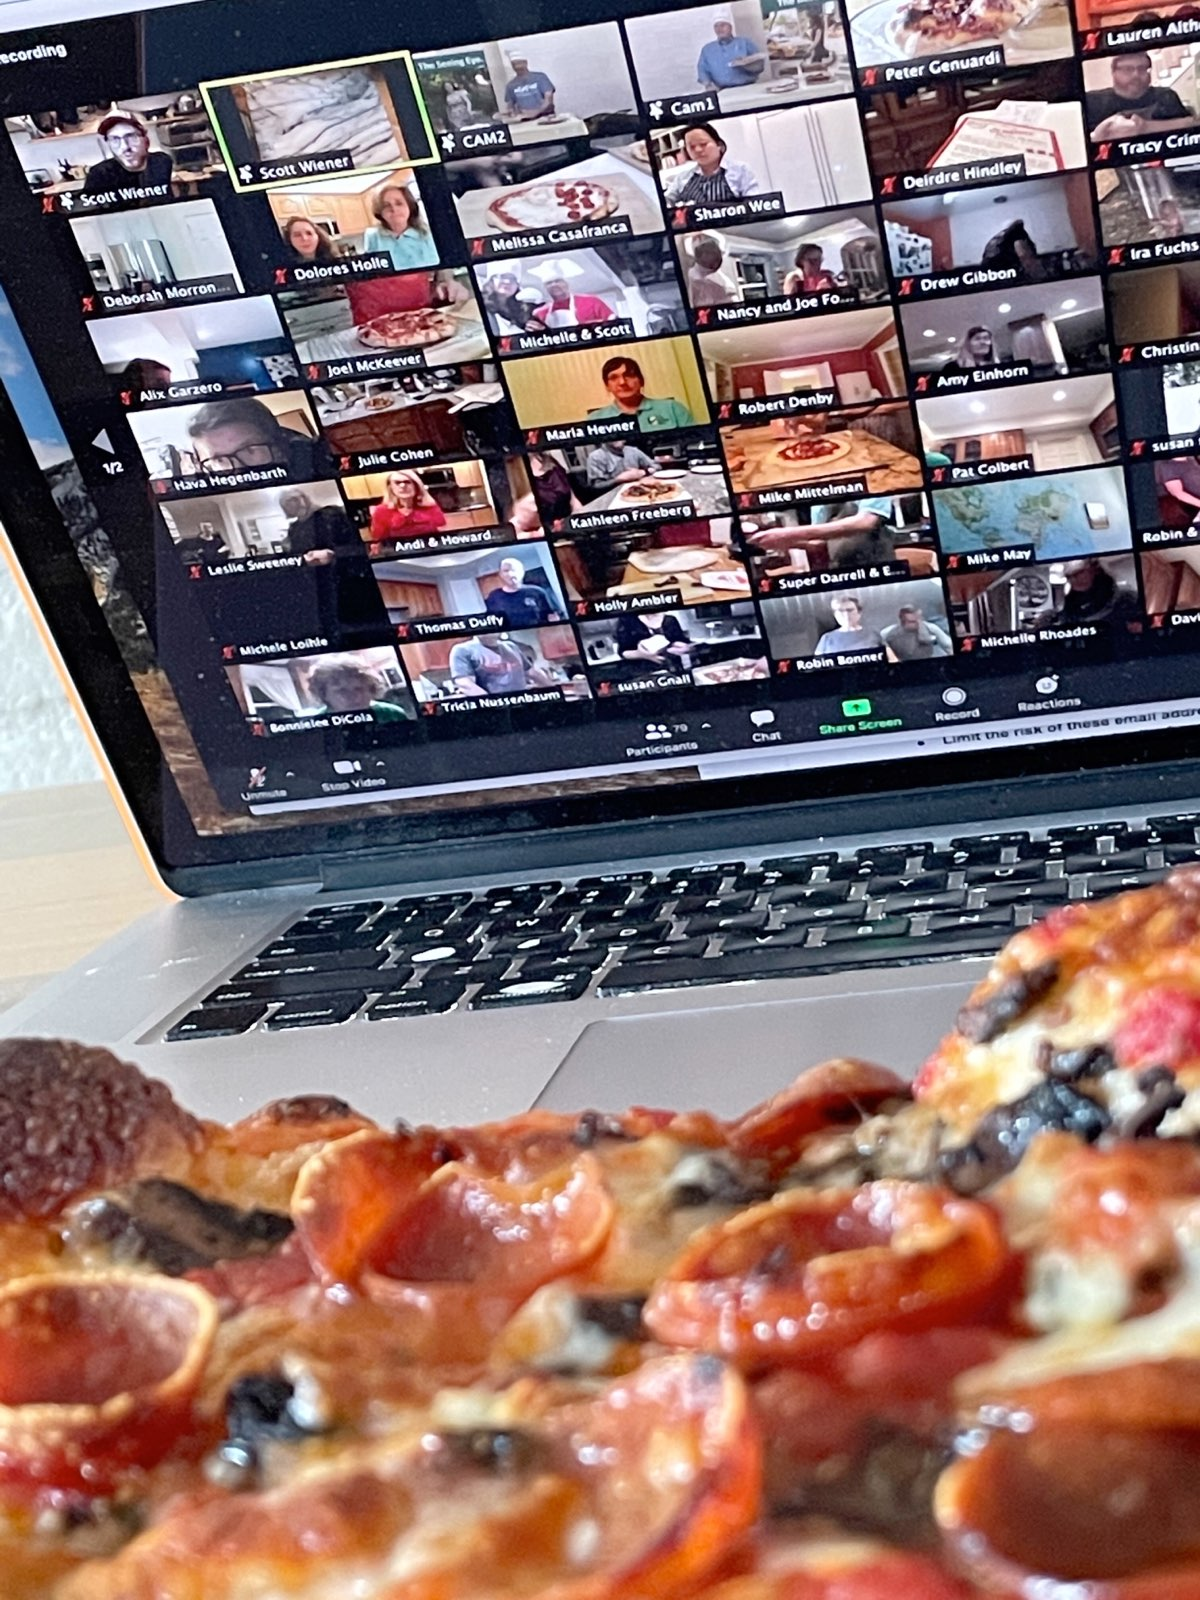 A close-up image of a freshly baked pizza resting before a computer screen showing a zoom call in progress with a full grid of participants.